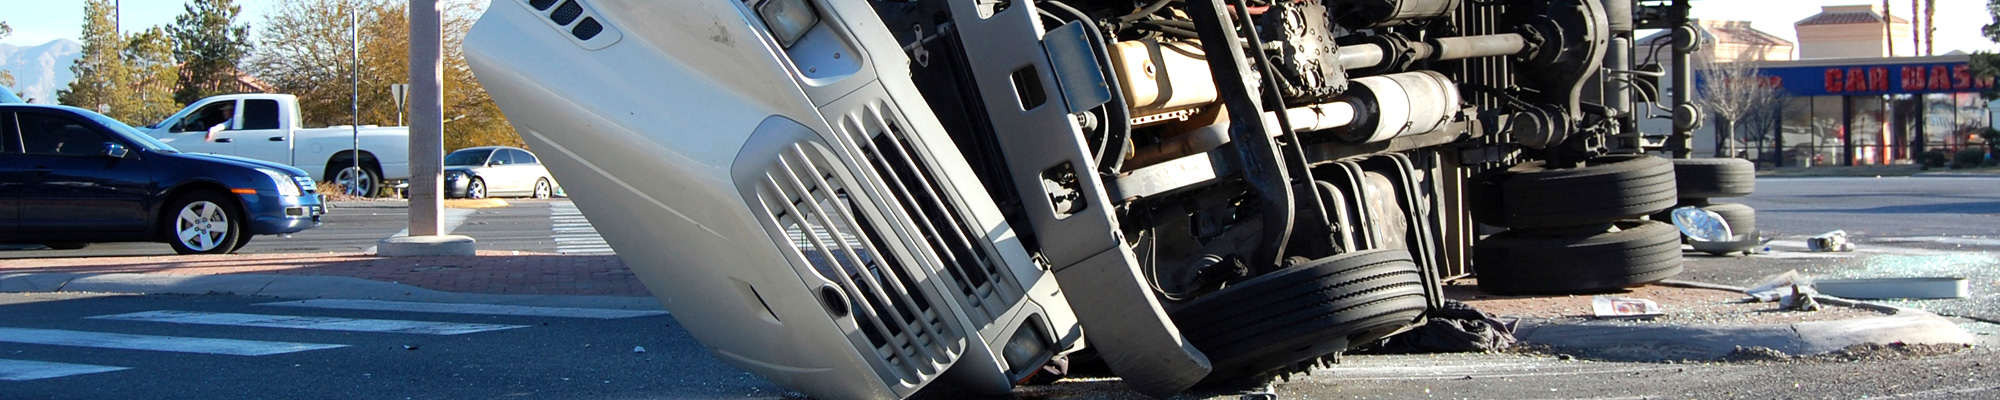 Truck and Trailer Damage Appraisals